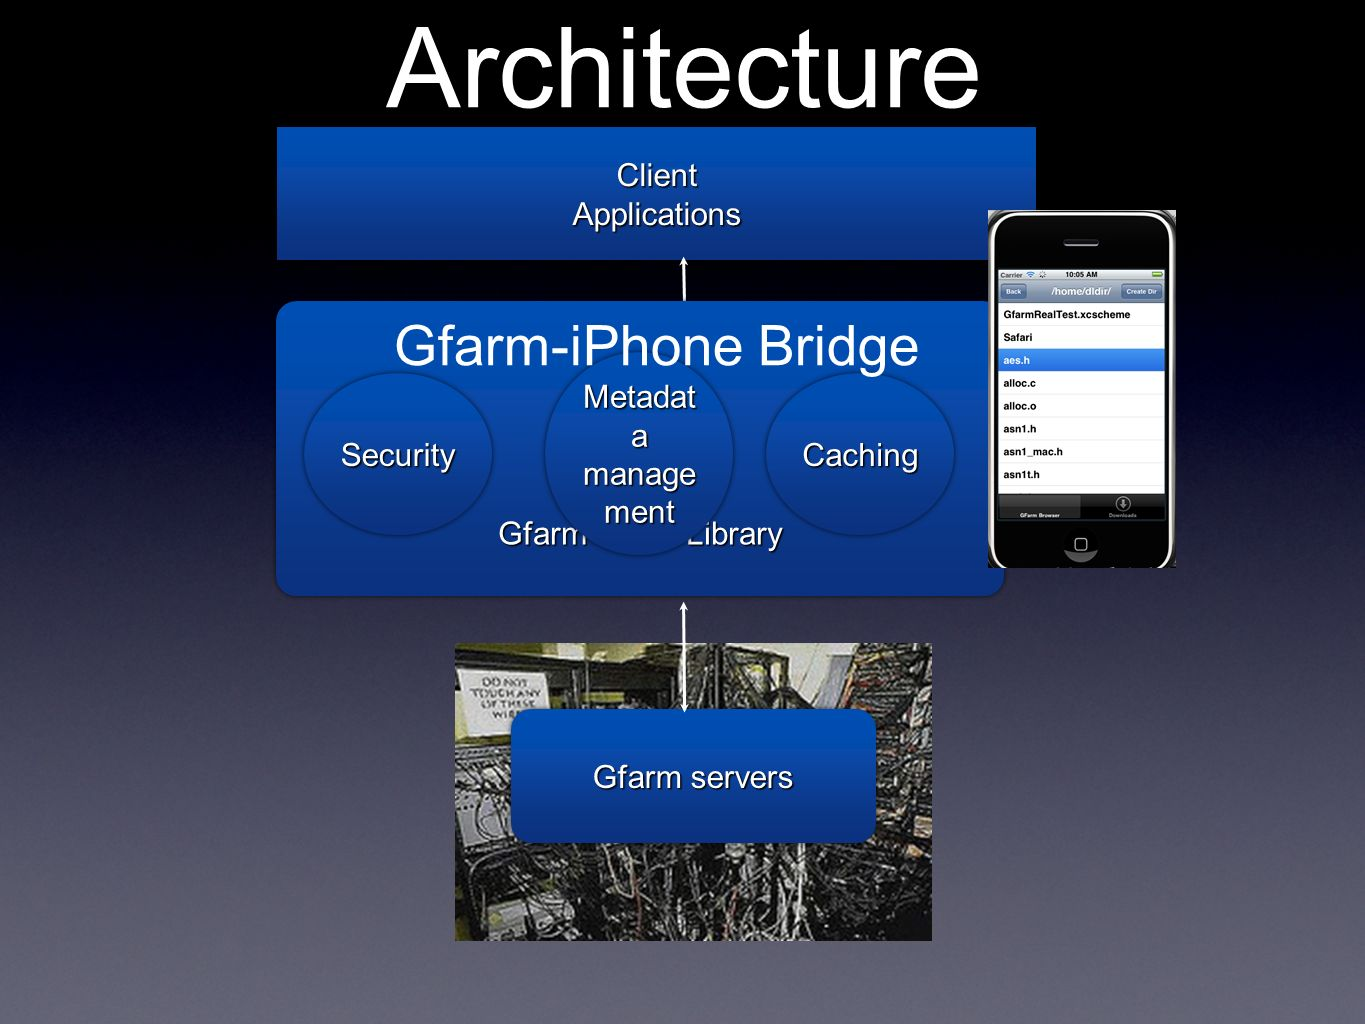 Architecture ClientApplicationsClientApplications Gfarm Client Library Gfarm servers SecuritySecurityCachingCaching Metadat a manage ment Gfarm-iPhone